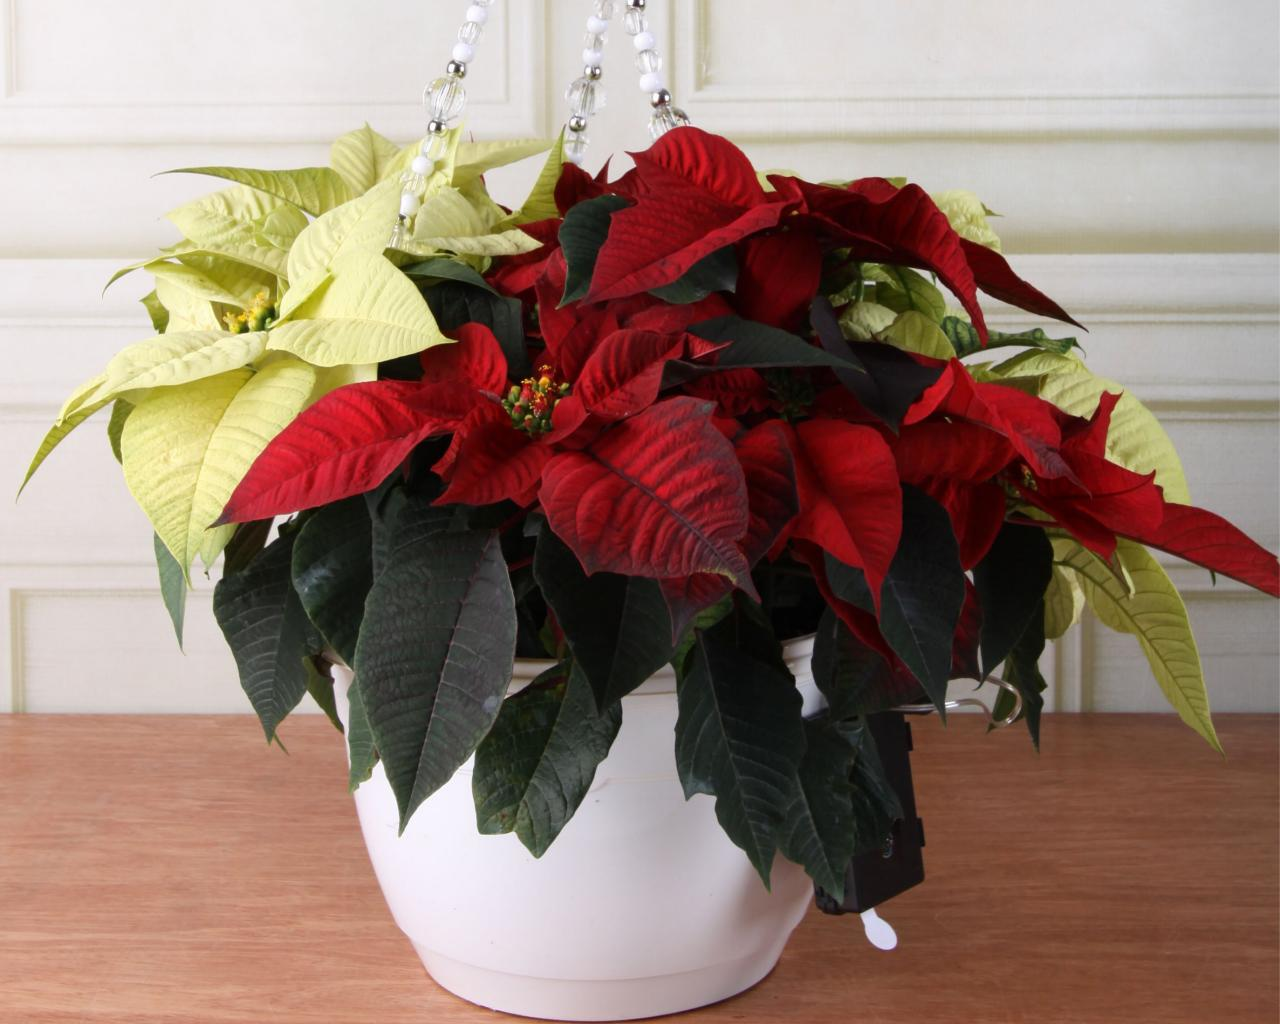 How To Care For Poinsettias Diy